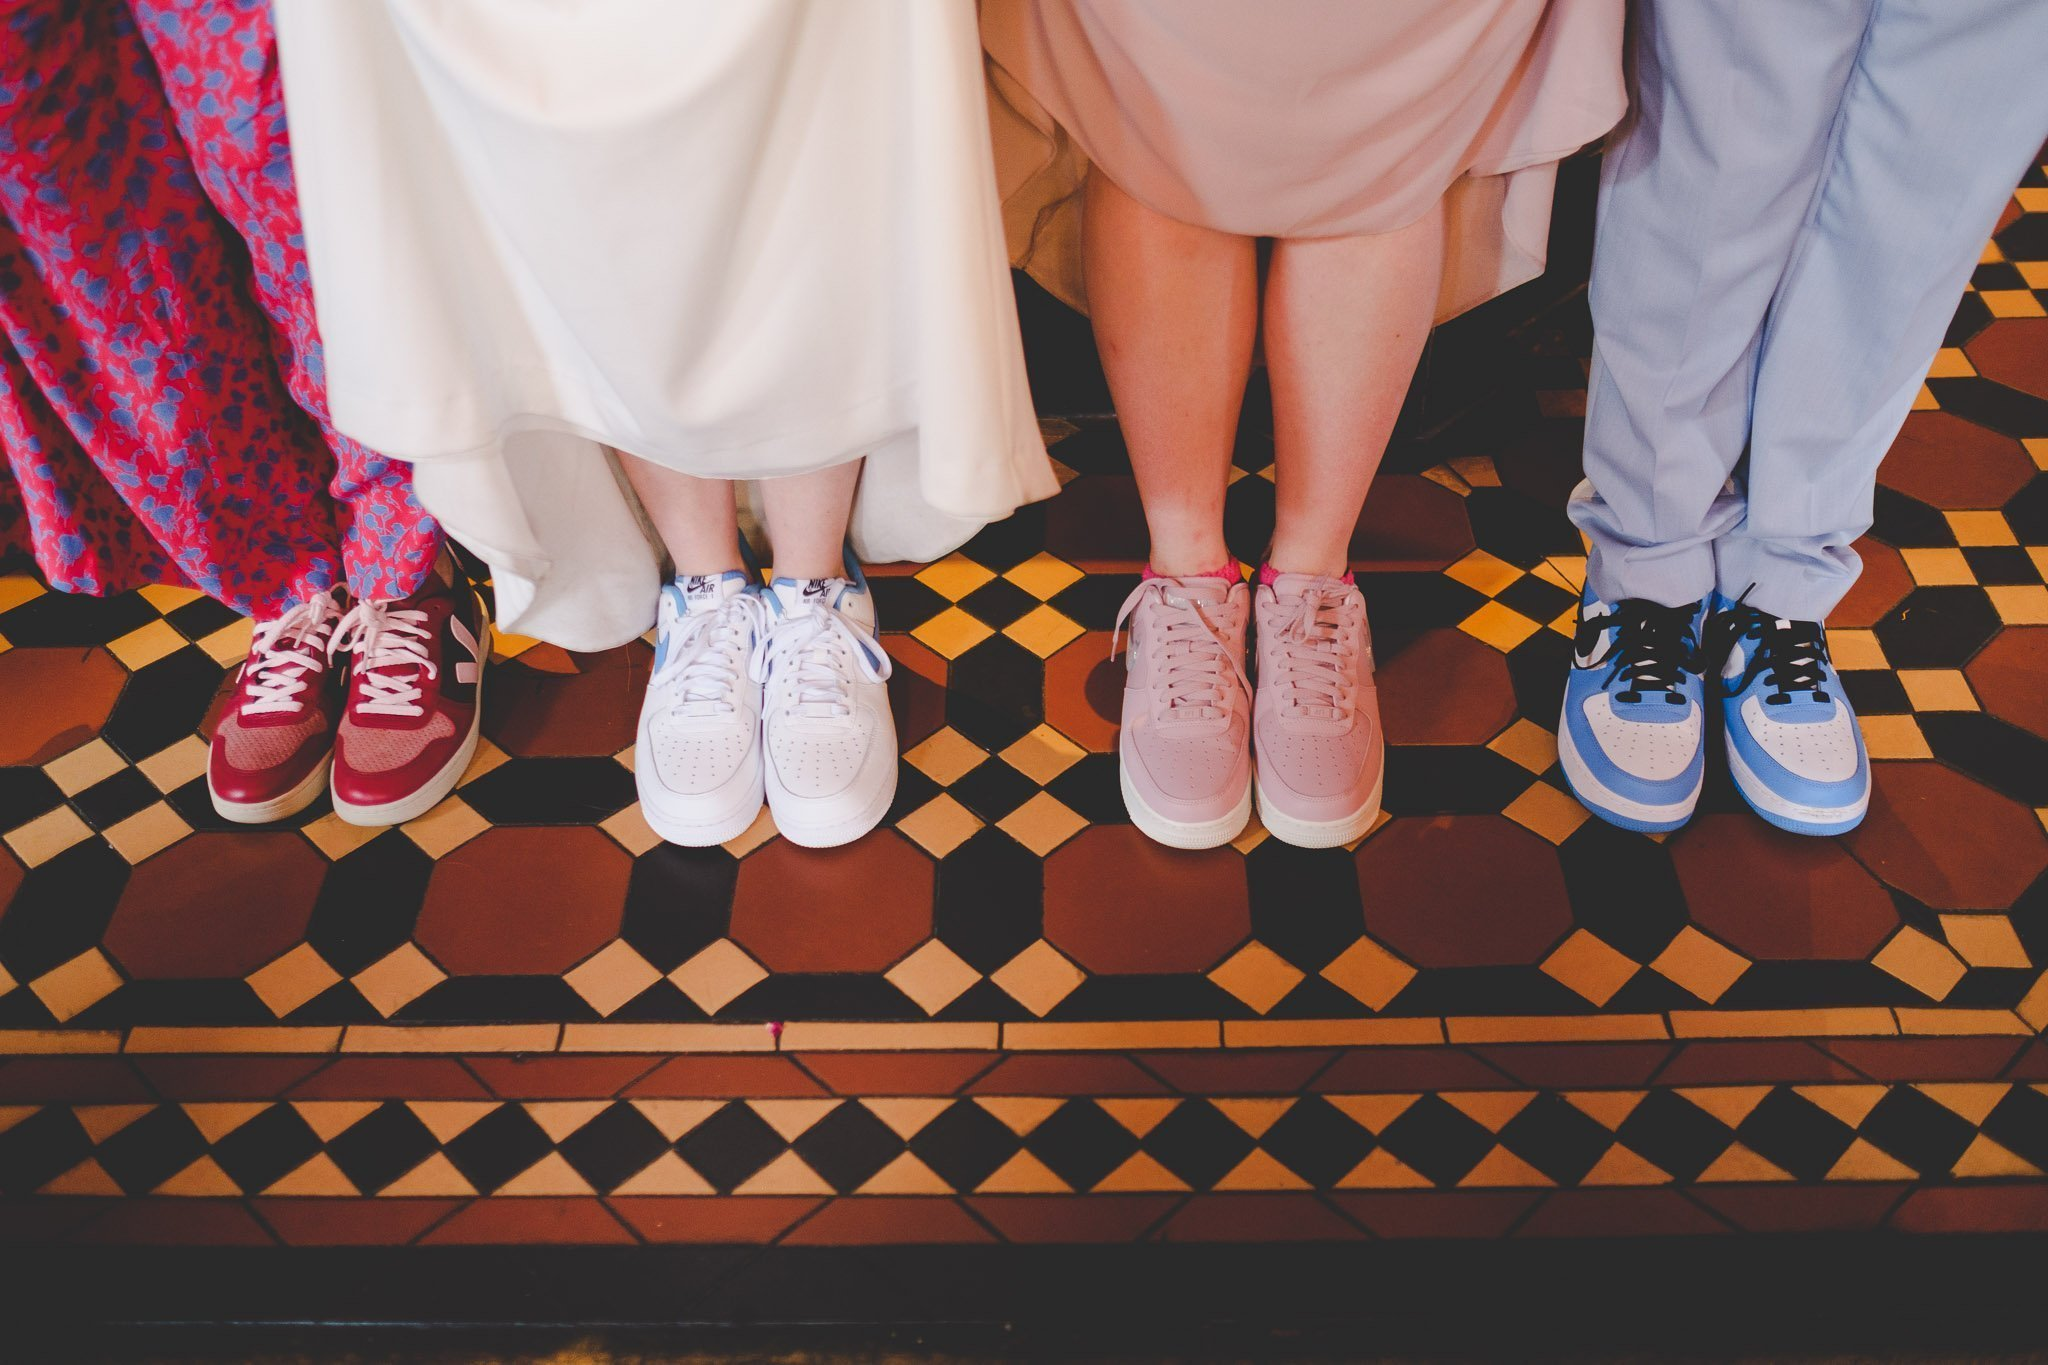 Guests trainers at a wedding reception in The Marquis Cornwallis Pub Bloomsbury London